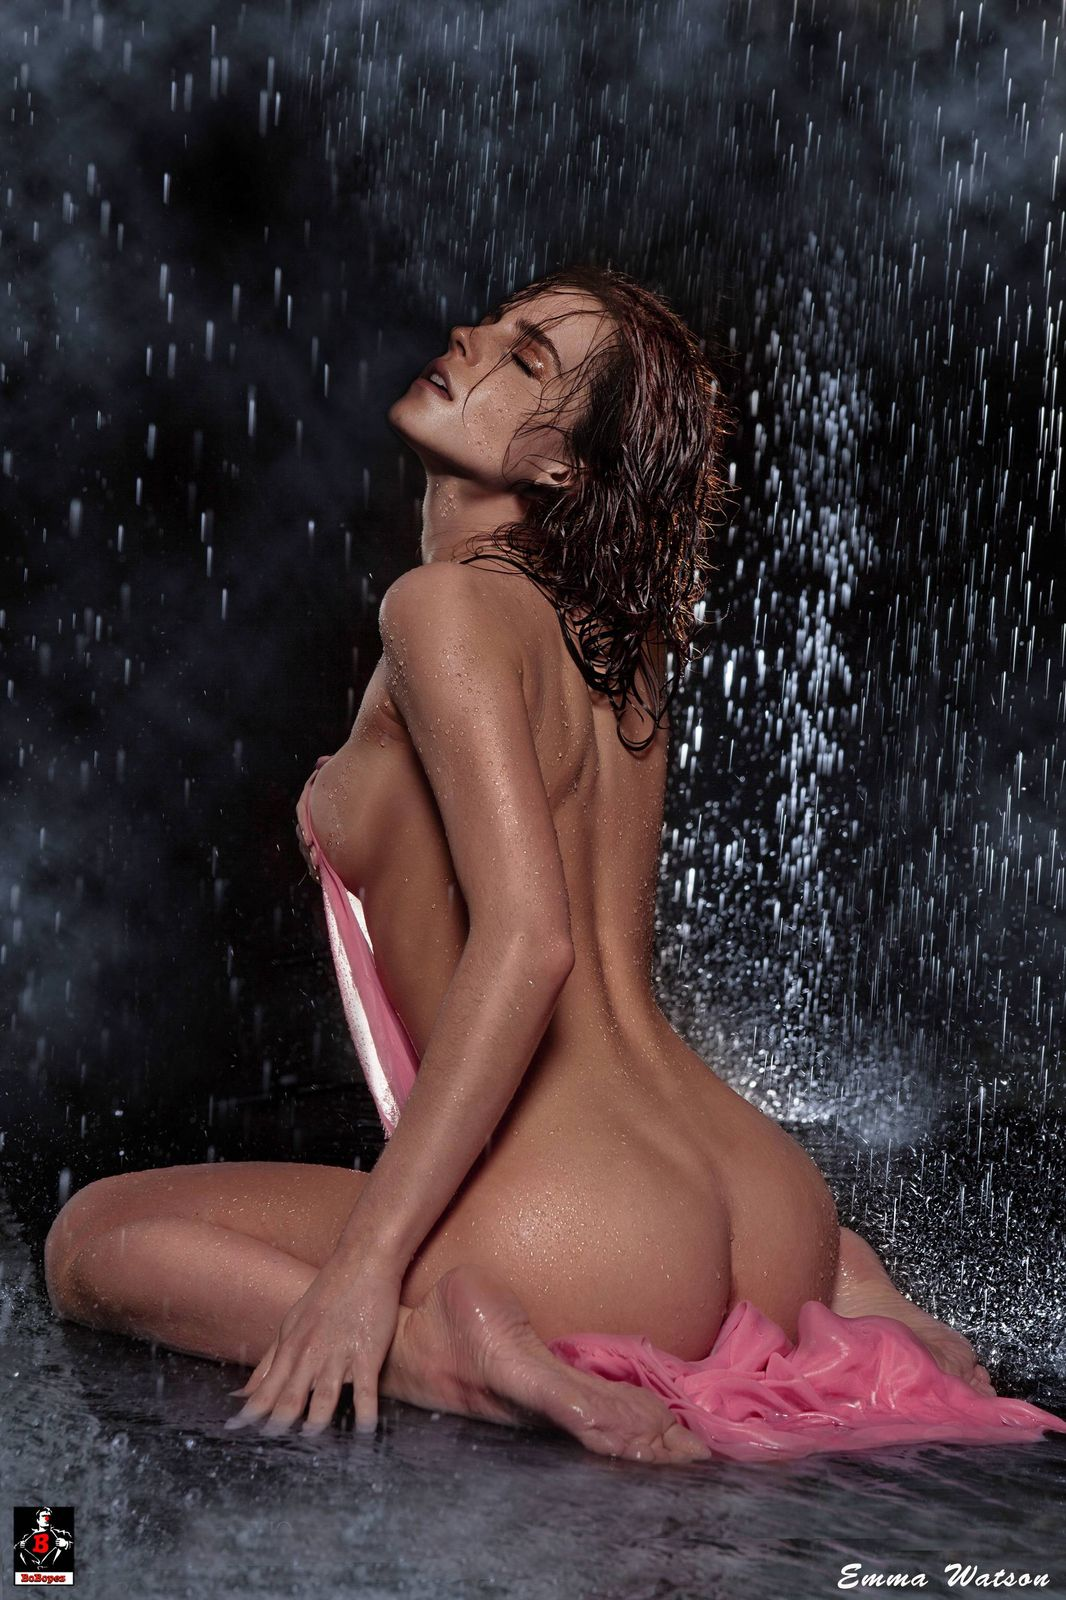 Emma Watson Nude in the Rain